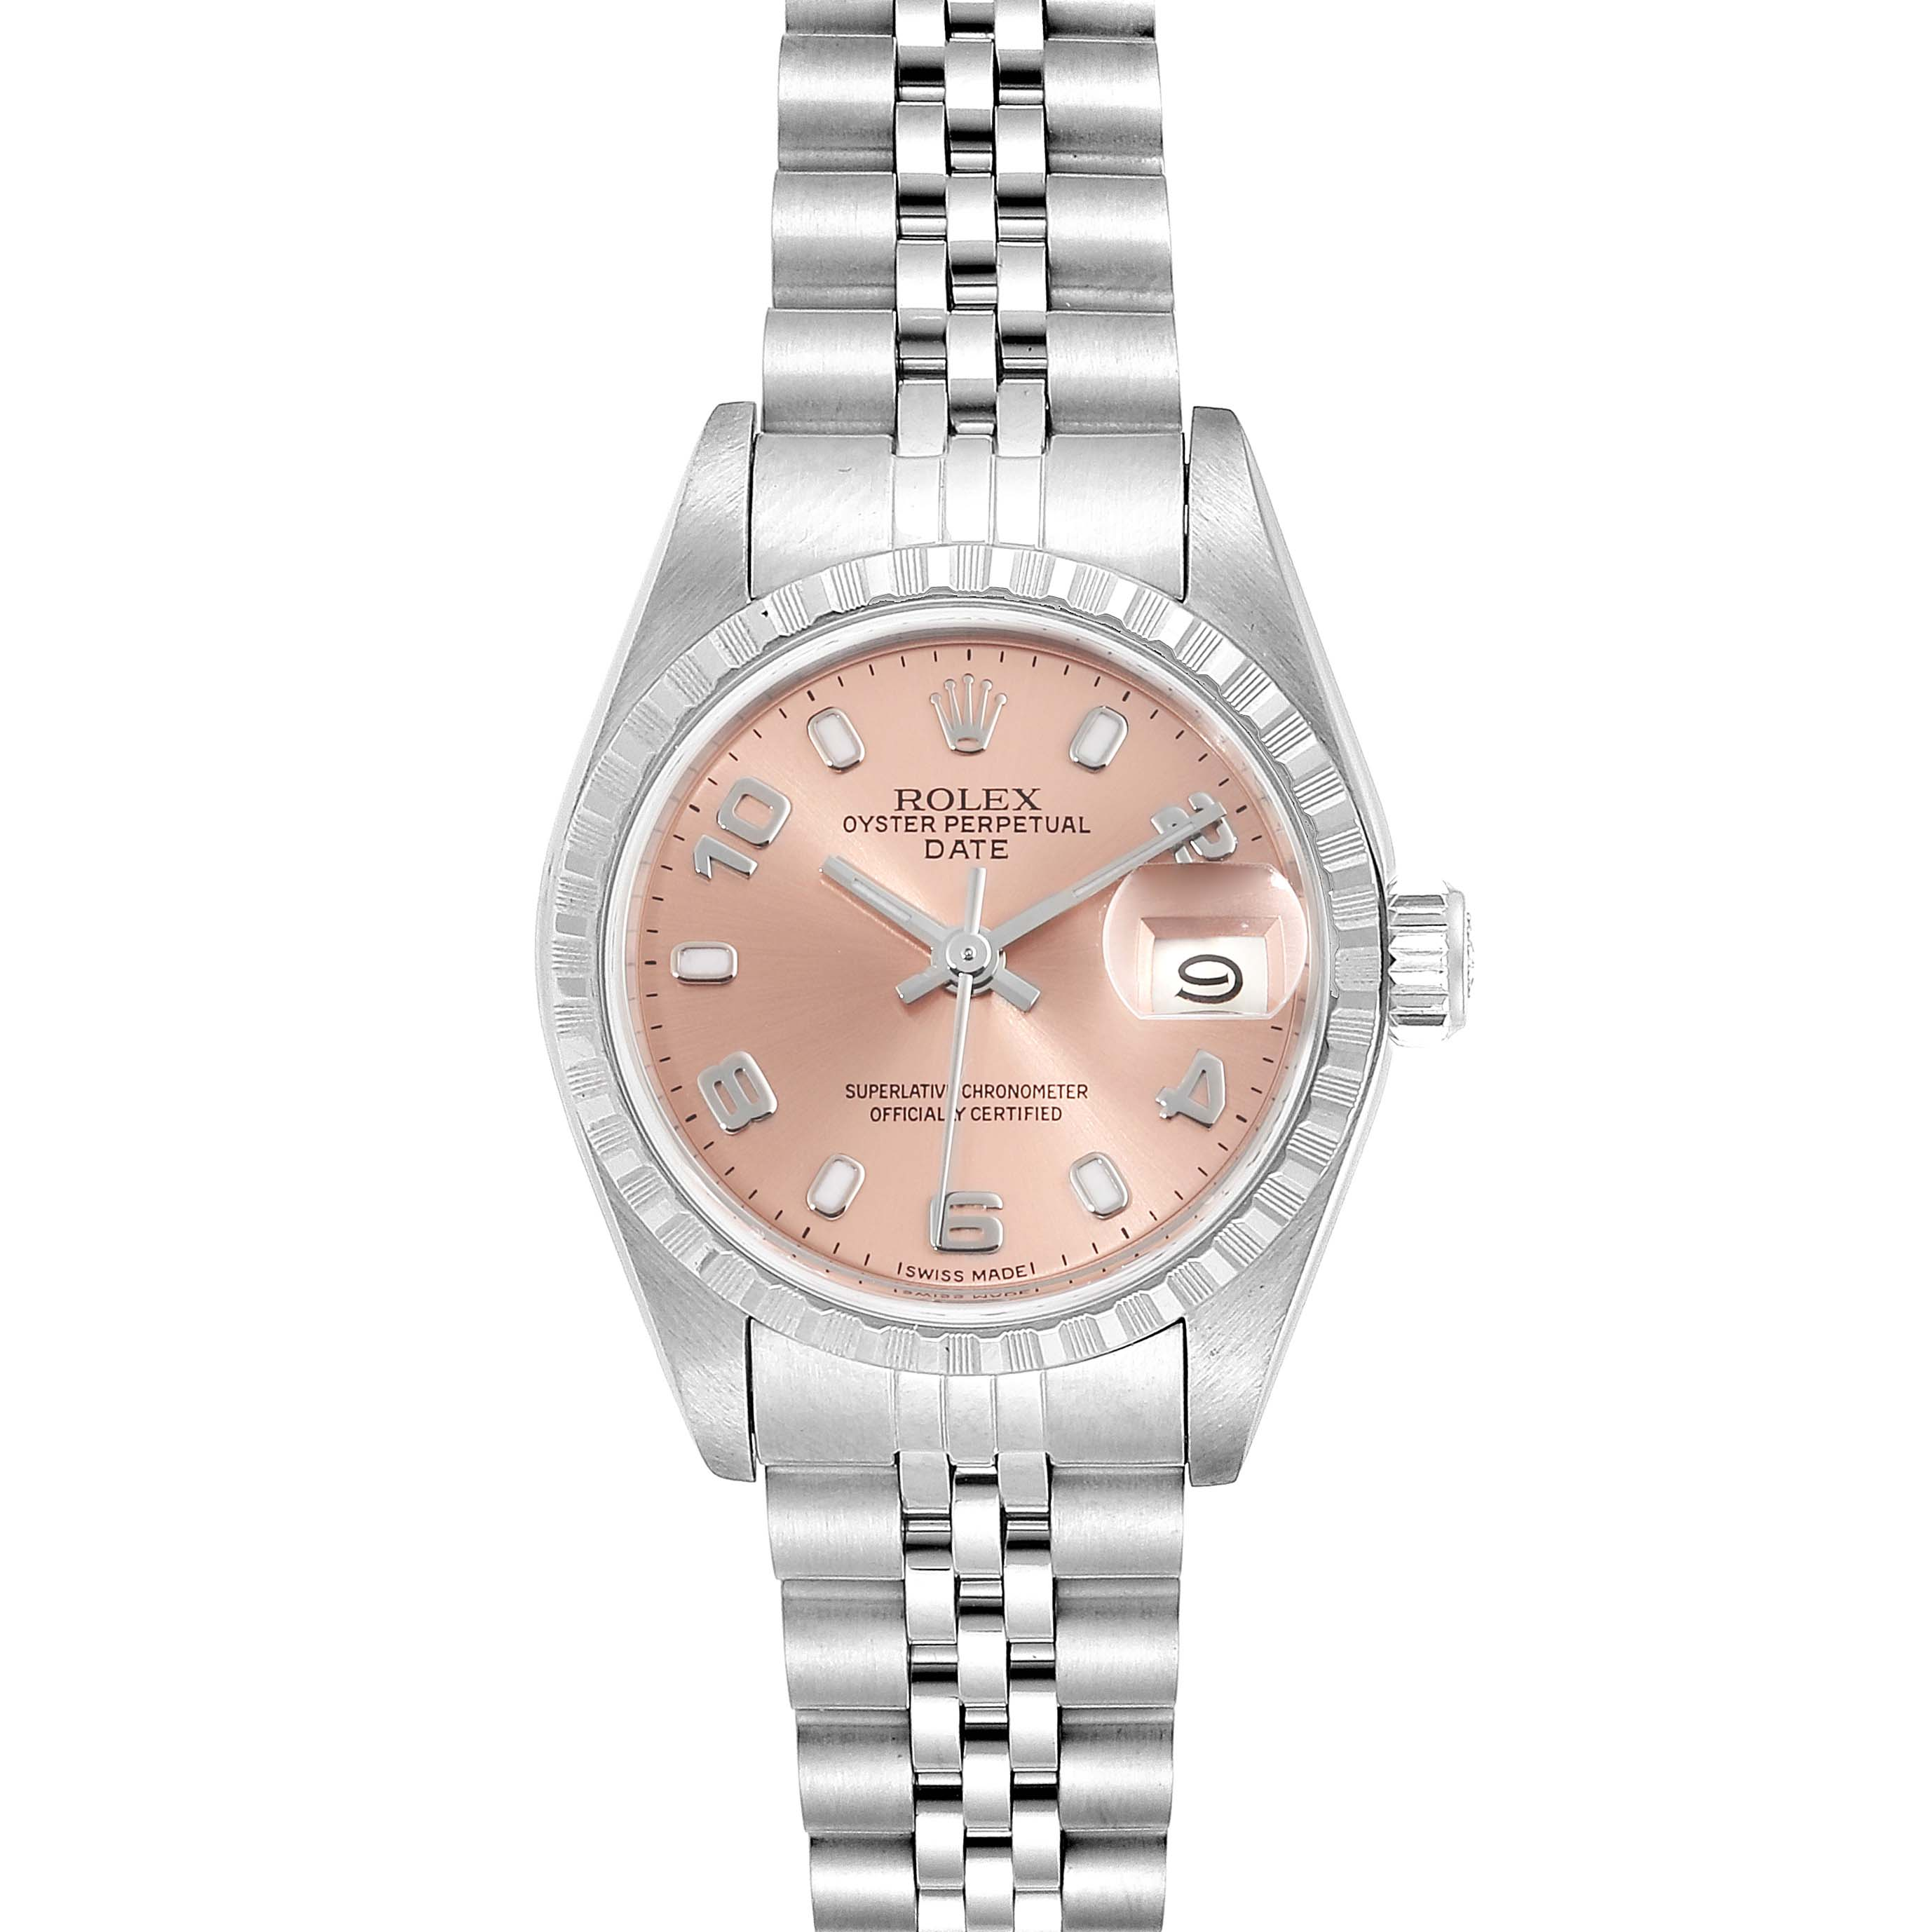 Photo of Rolex Date Salmon Dial Jubilee Bracelet Steel Ladies Watch 69240 Box Papers